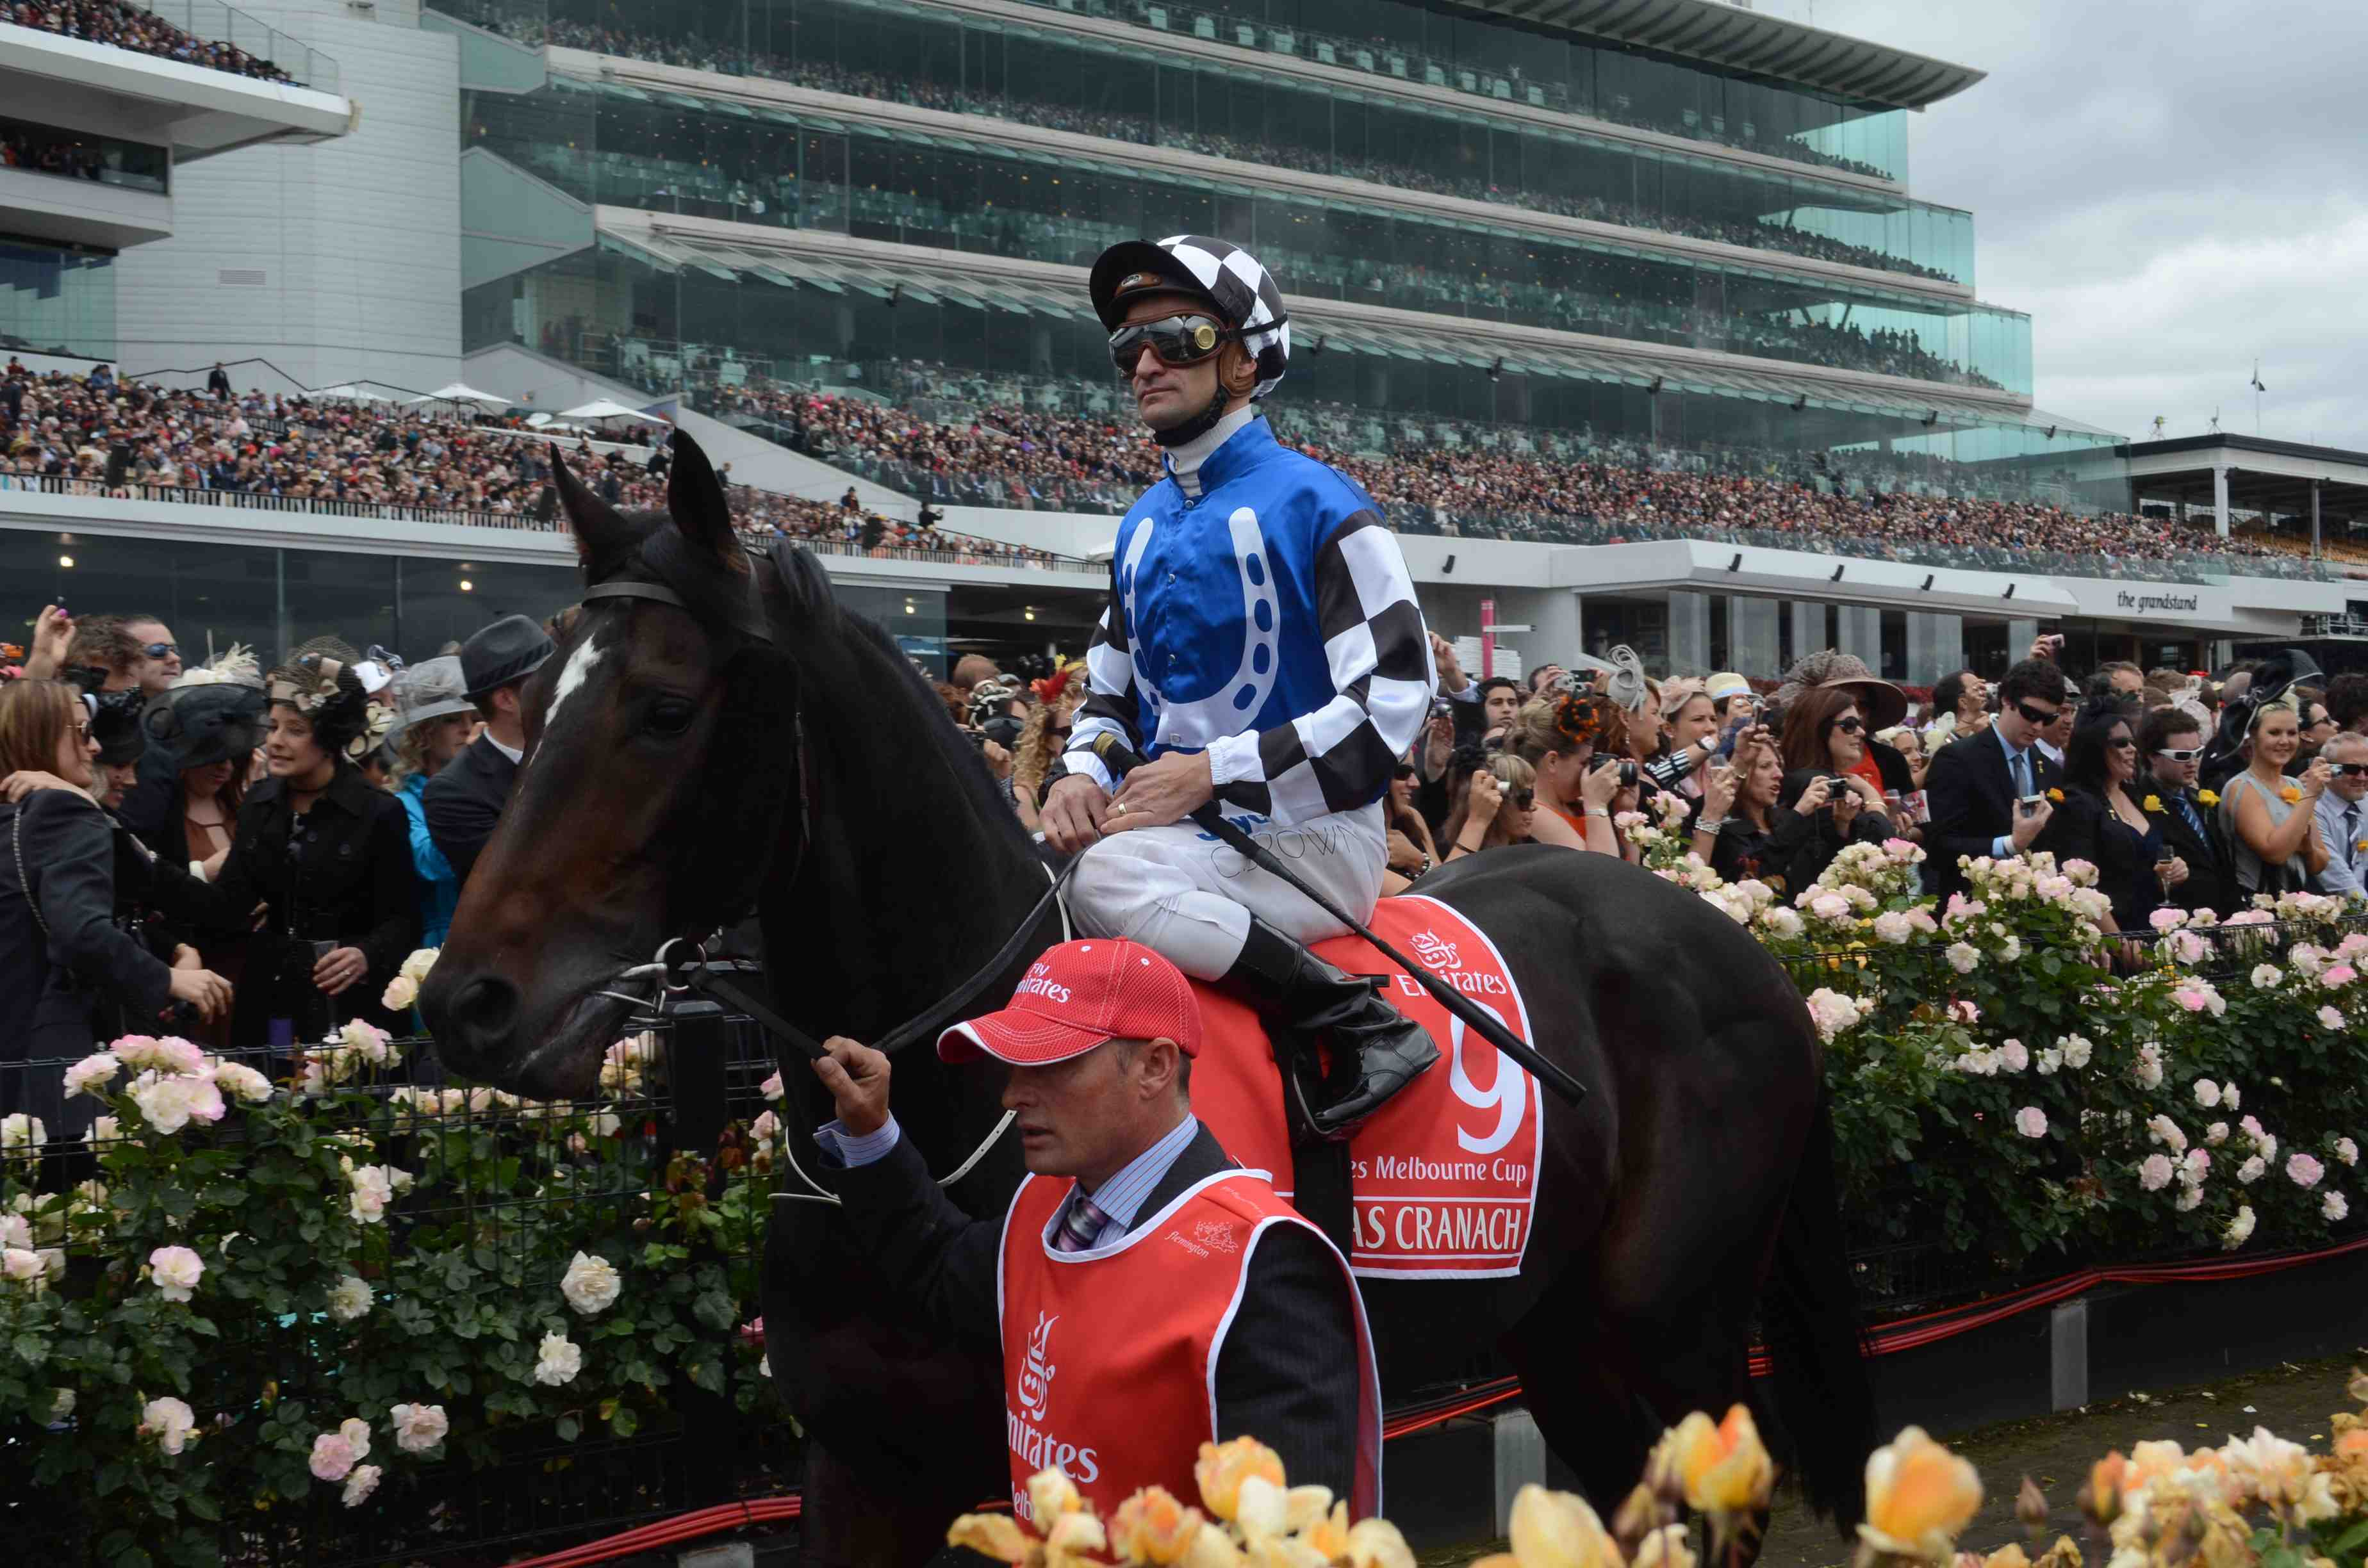 Lucas Cranach at the 2011 Emirates Melbourne Cup